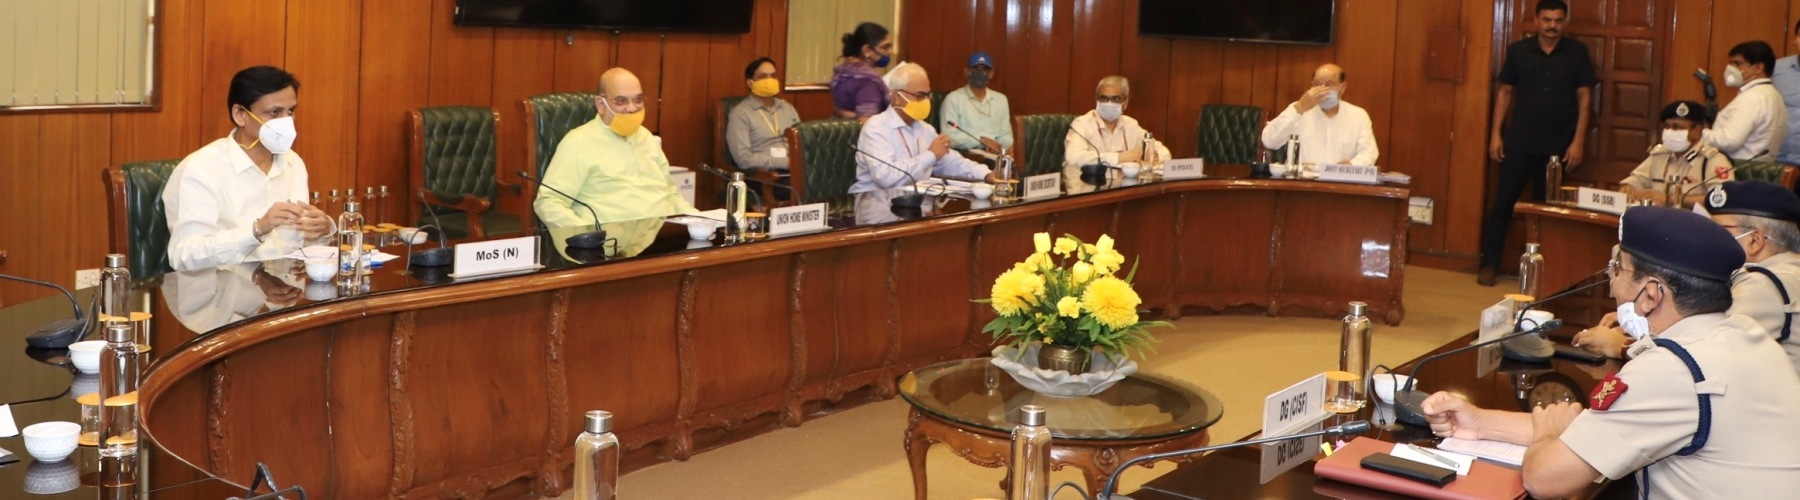 Union Minister for Home Affairs, Shri Amit Shah chaired a review meeting of Directors General of All Central Armed Police Forces, in New Delhi, on May 08, 2020.